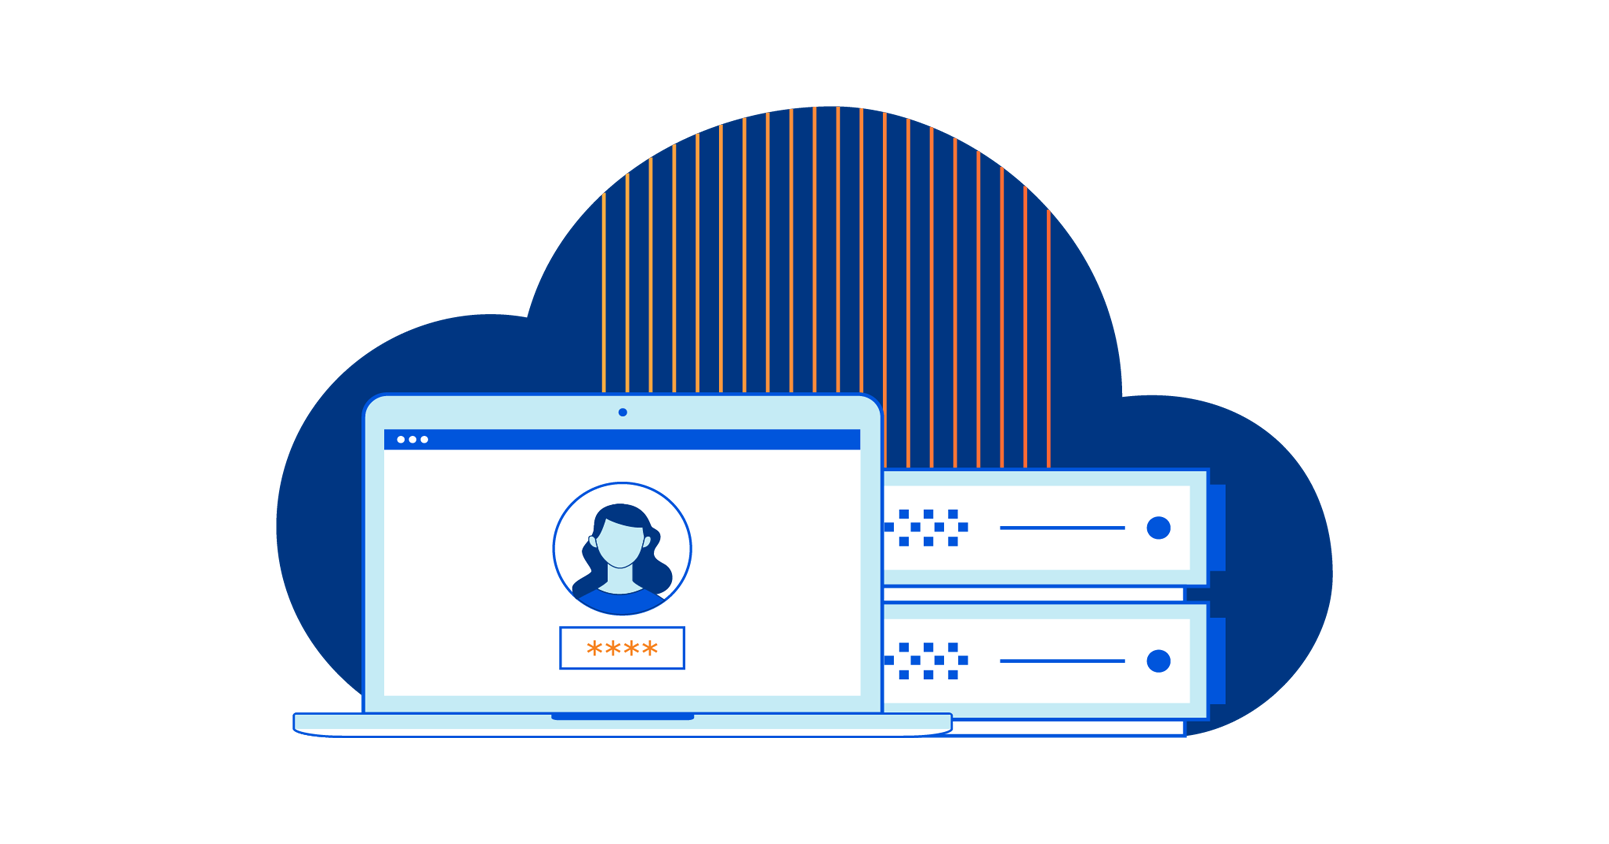 Announcing Tenant Control in Cloudflare Gateway